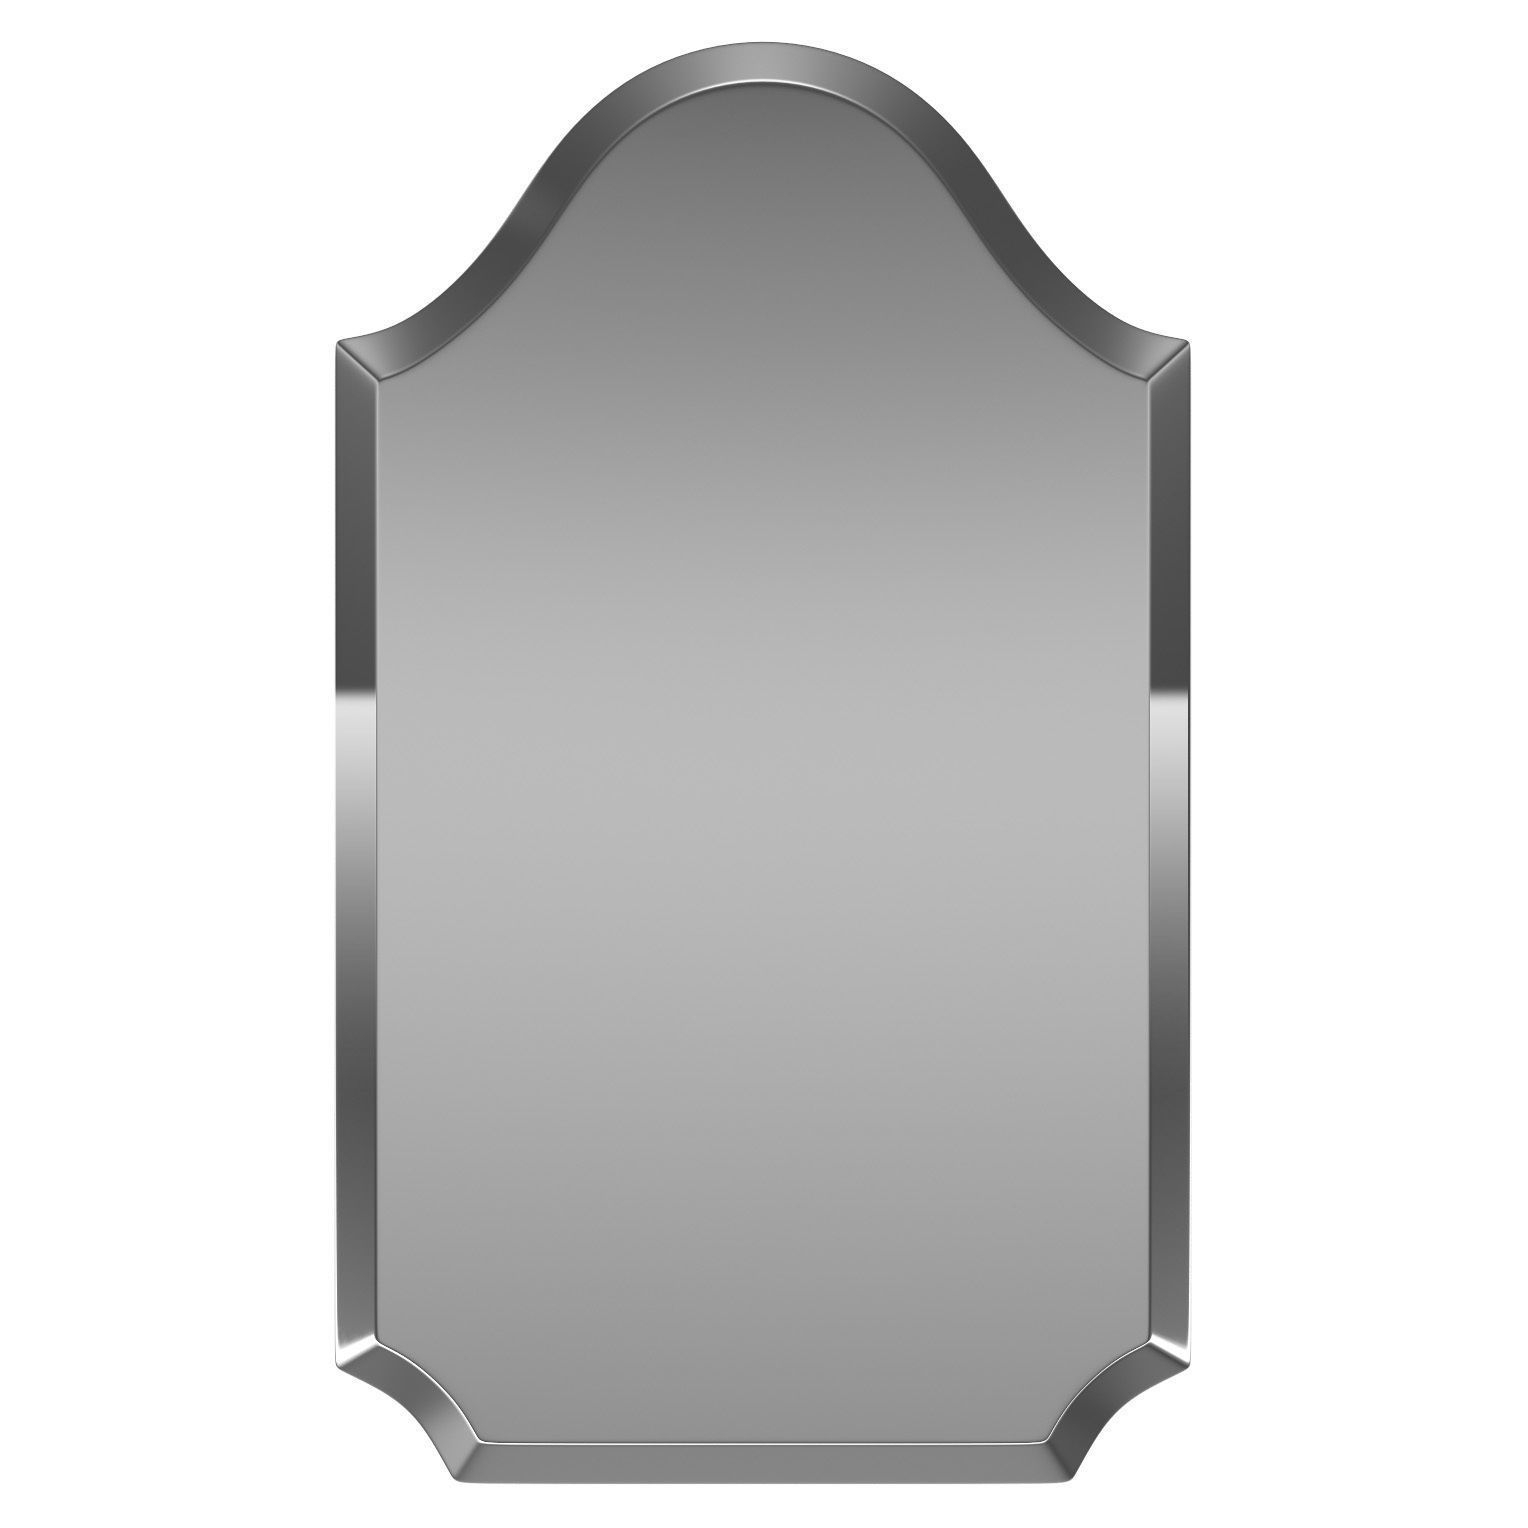 Dariel Tall Arched Scalloped Wall Mirror Wrlo6854 | 3D Model regarding Dariel Tall Arched Scalloped Wall Mirrors (Image 8 of 30)